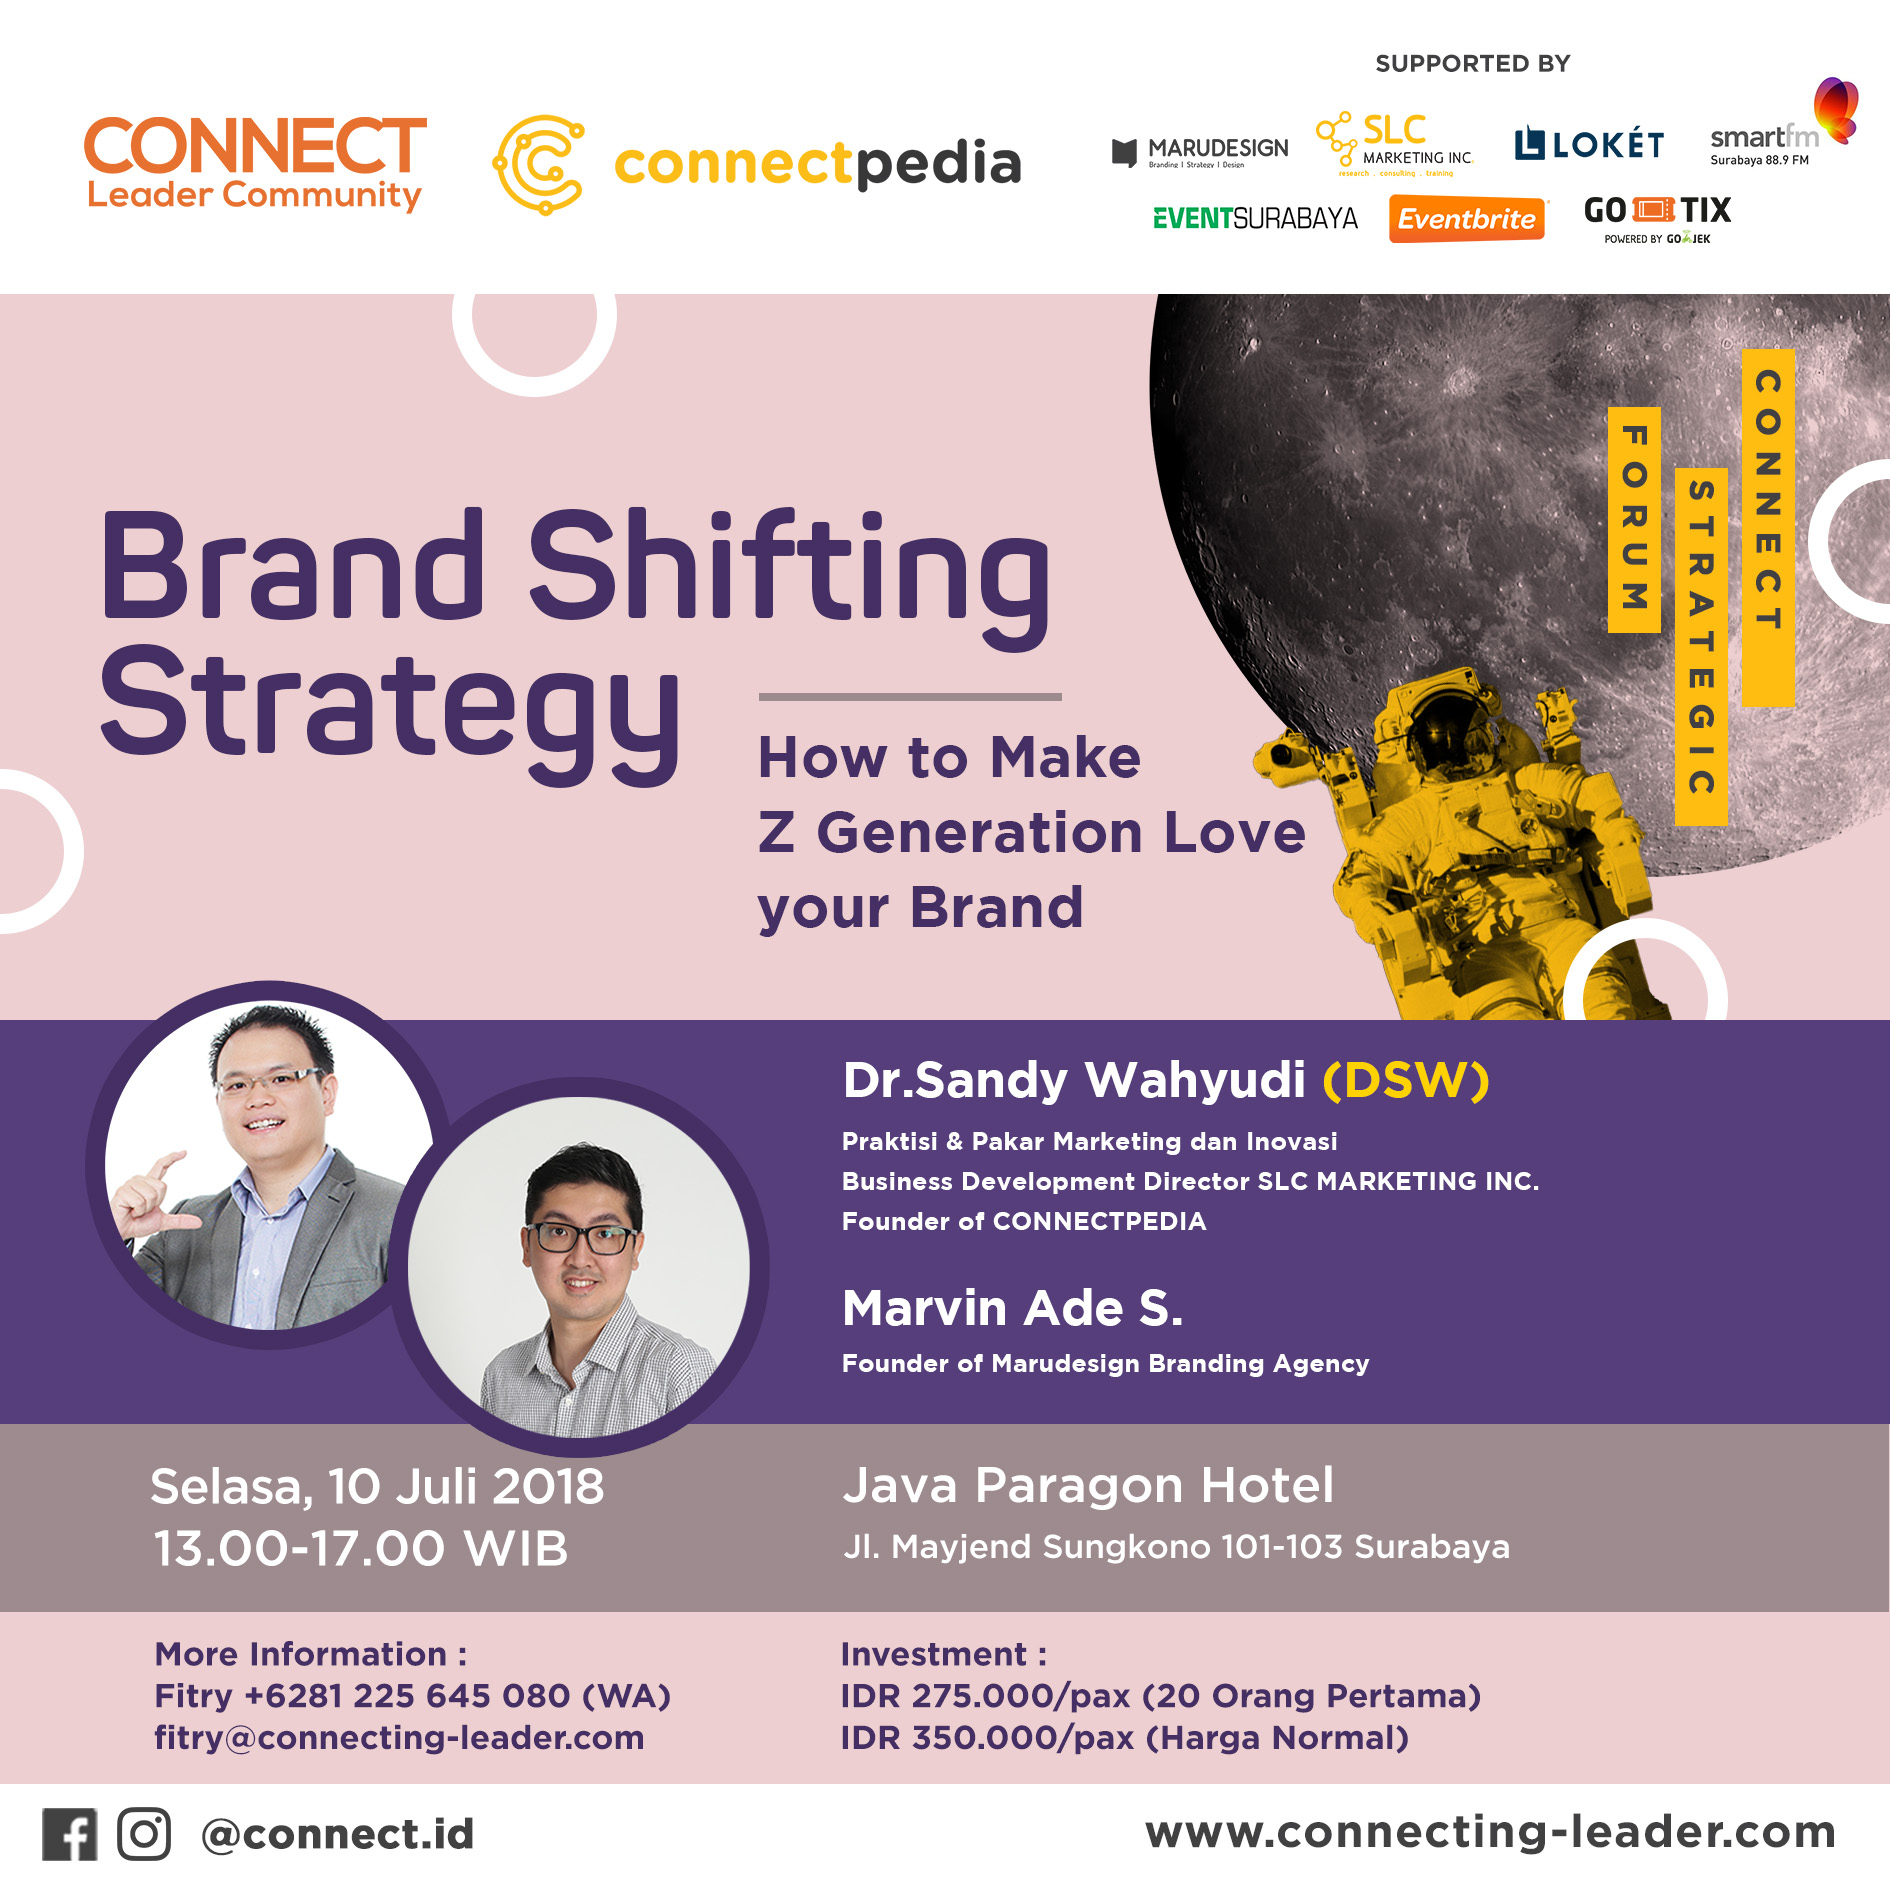 MP STRATEGIC FORUM How to Make Z Generation Love your Brand Connect Leader munity Copy